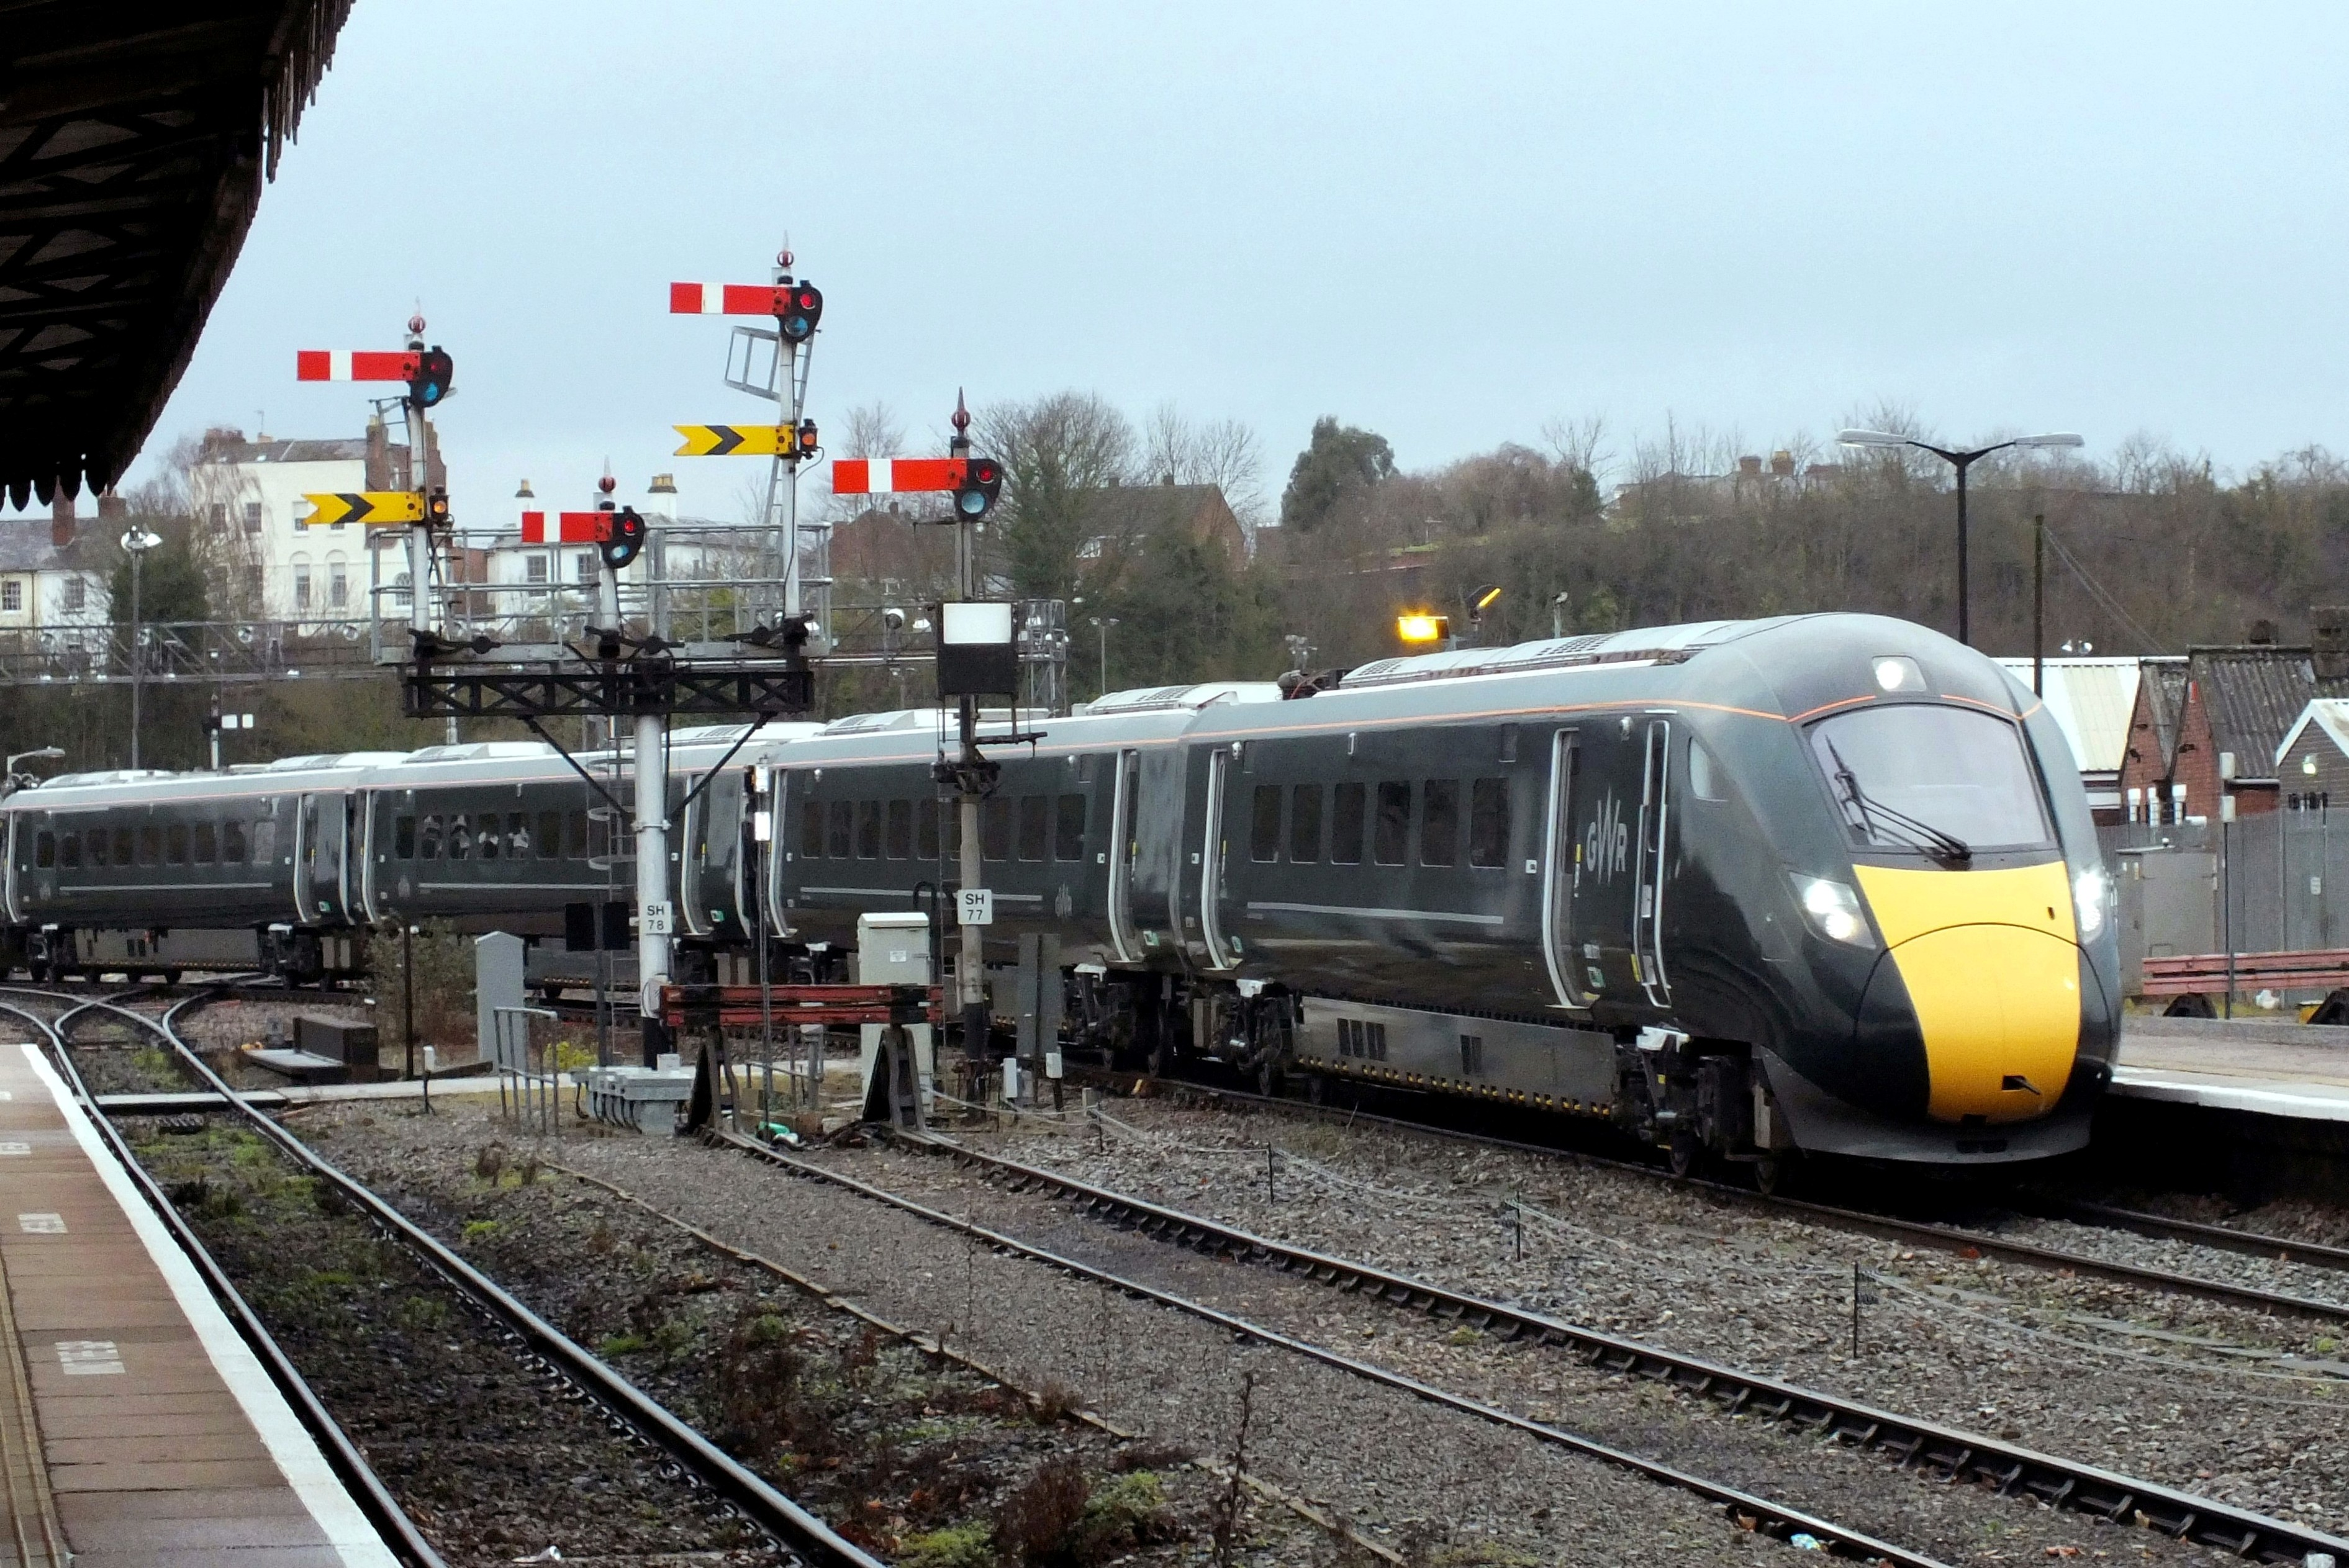 05 January 2018 Shrub Hill 006.jpg